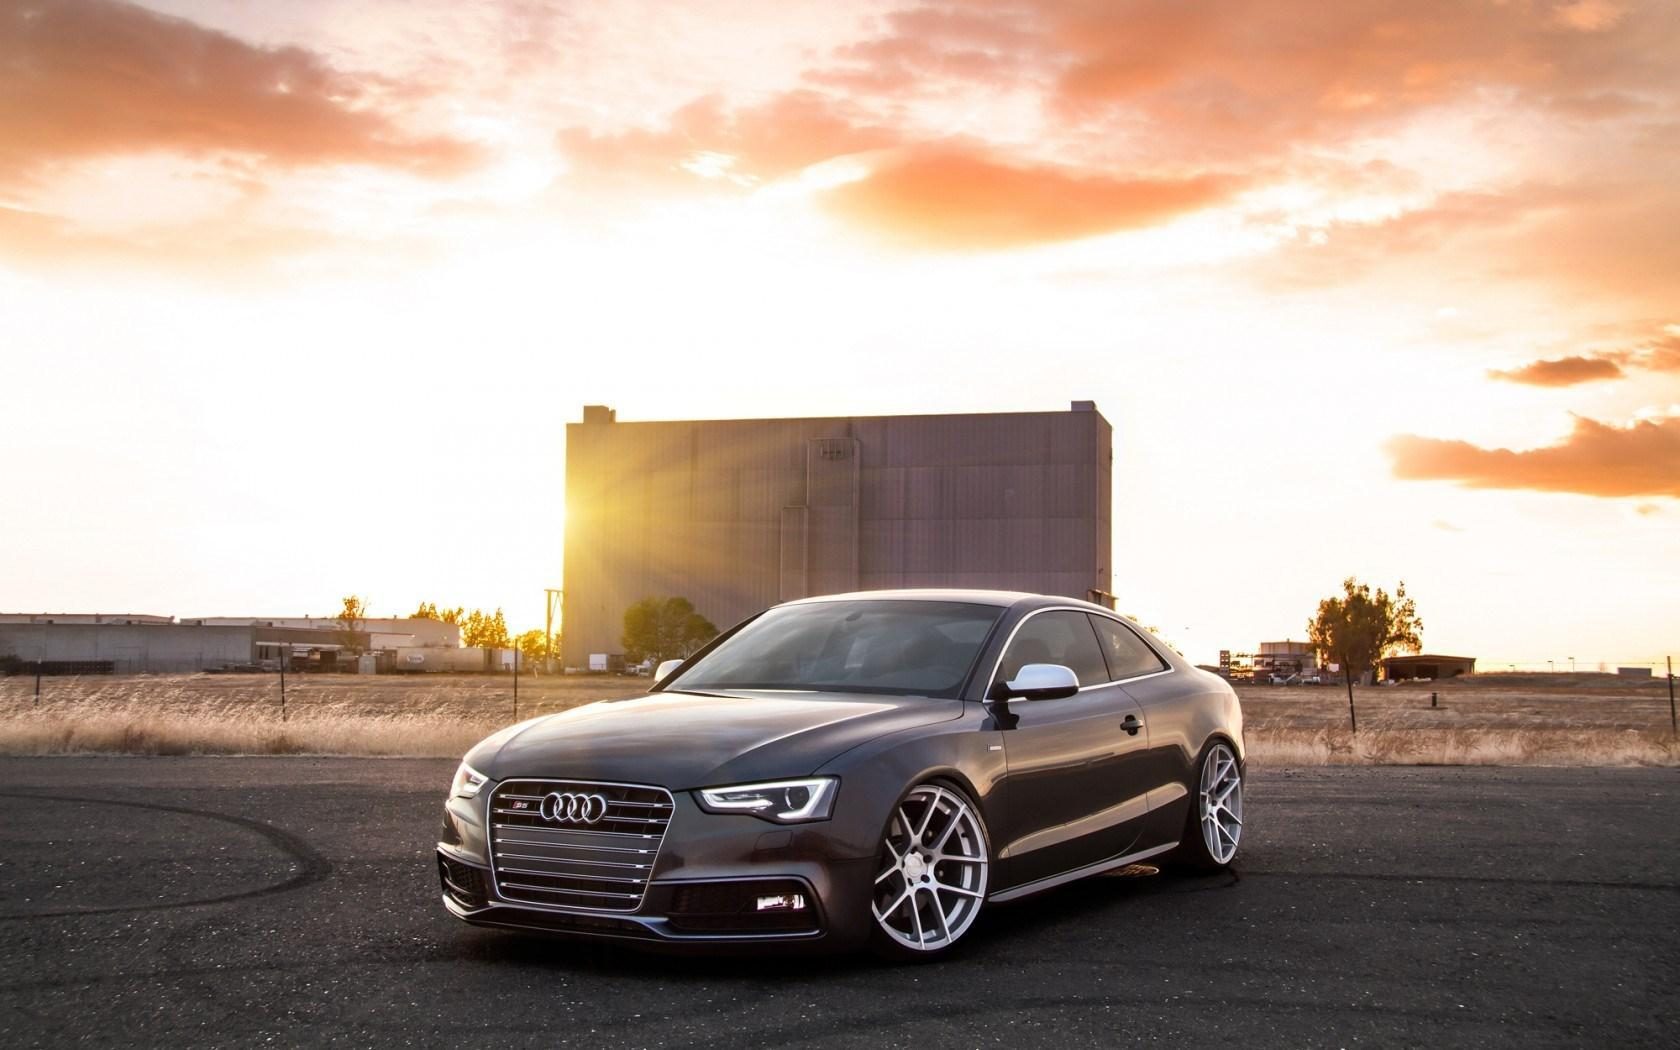 Audi RS7 Wallpapers, Audi RS7 Wallpapers For Free Download, T4